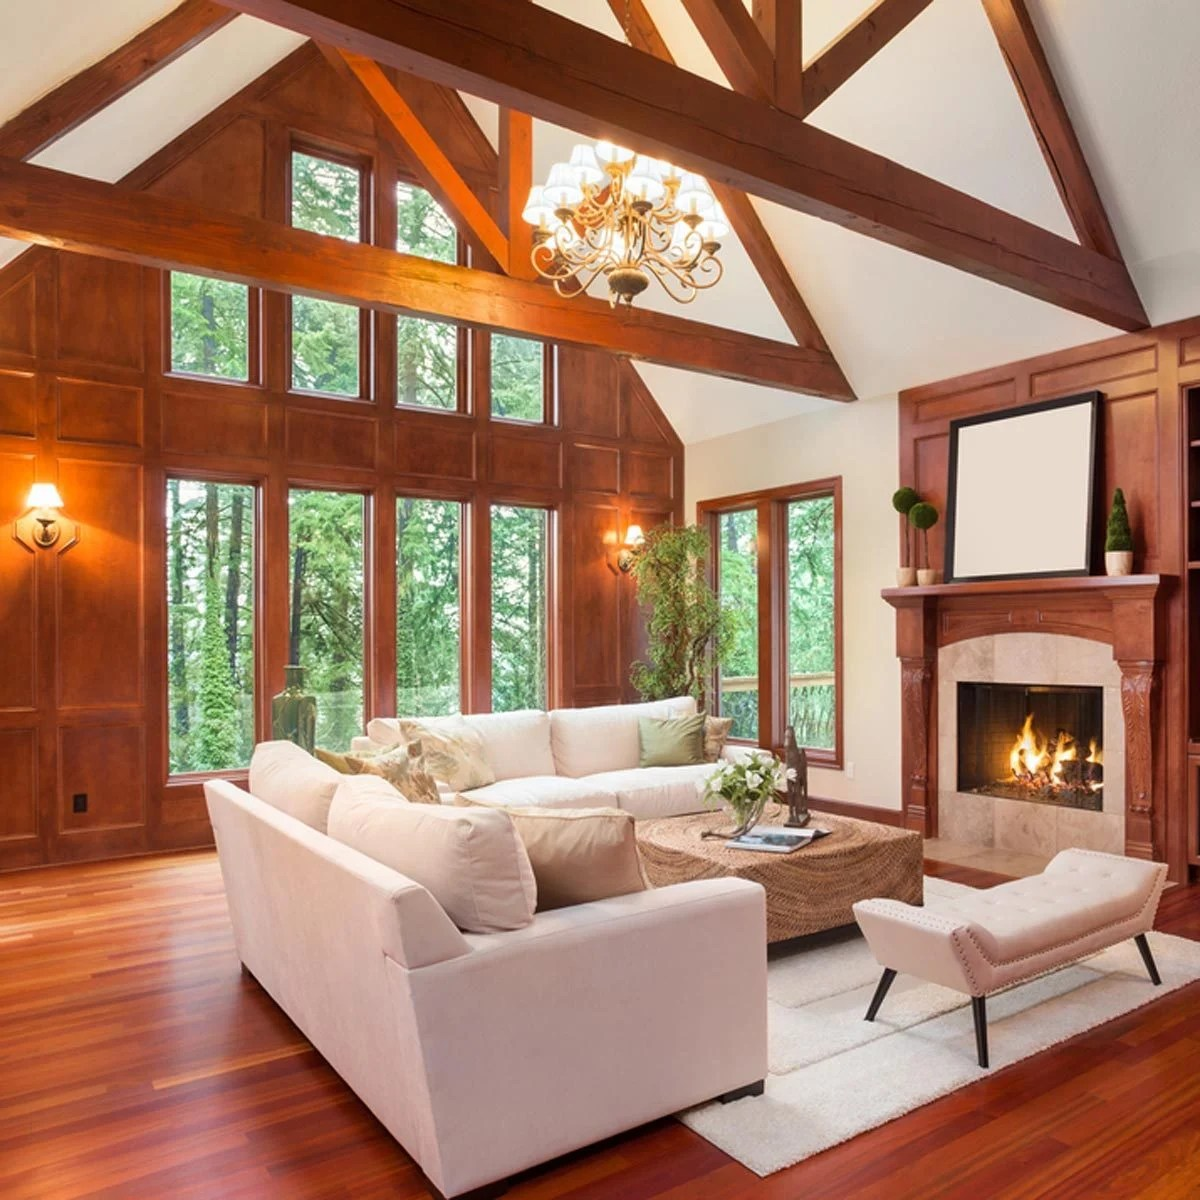 Painted Wood Ceilings 10 New Trends In Wood Trim For 2018 The Family Handyman